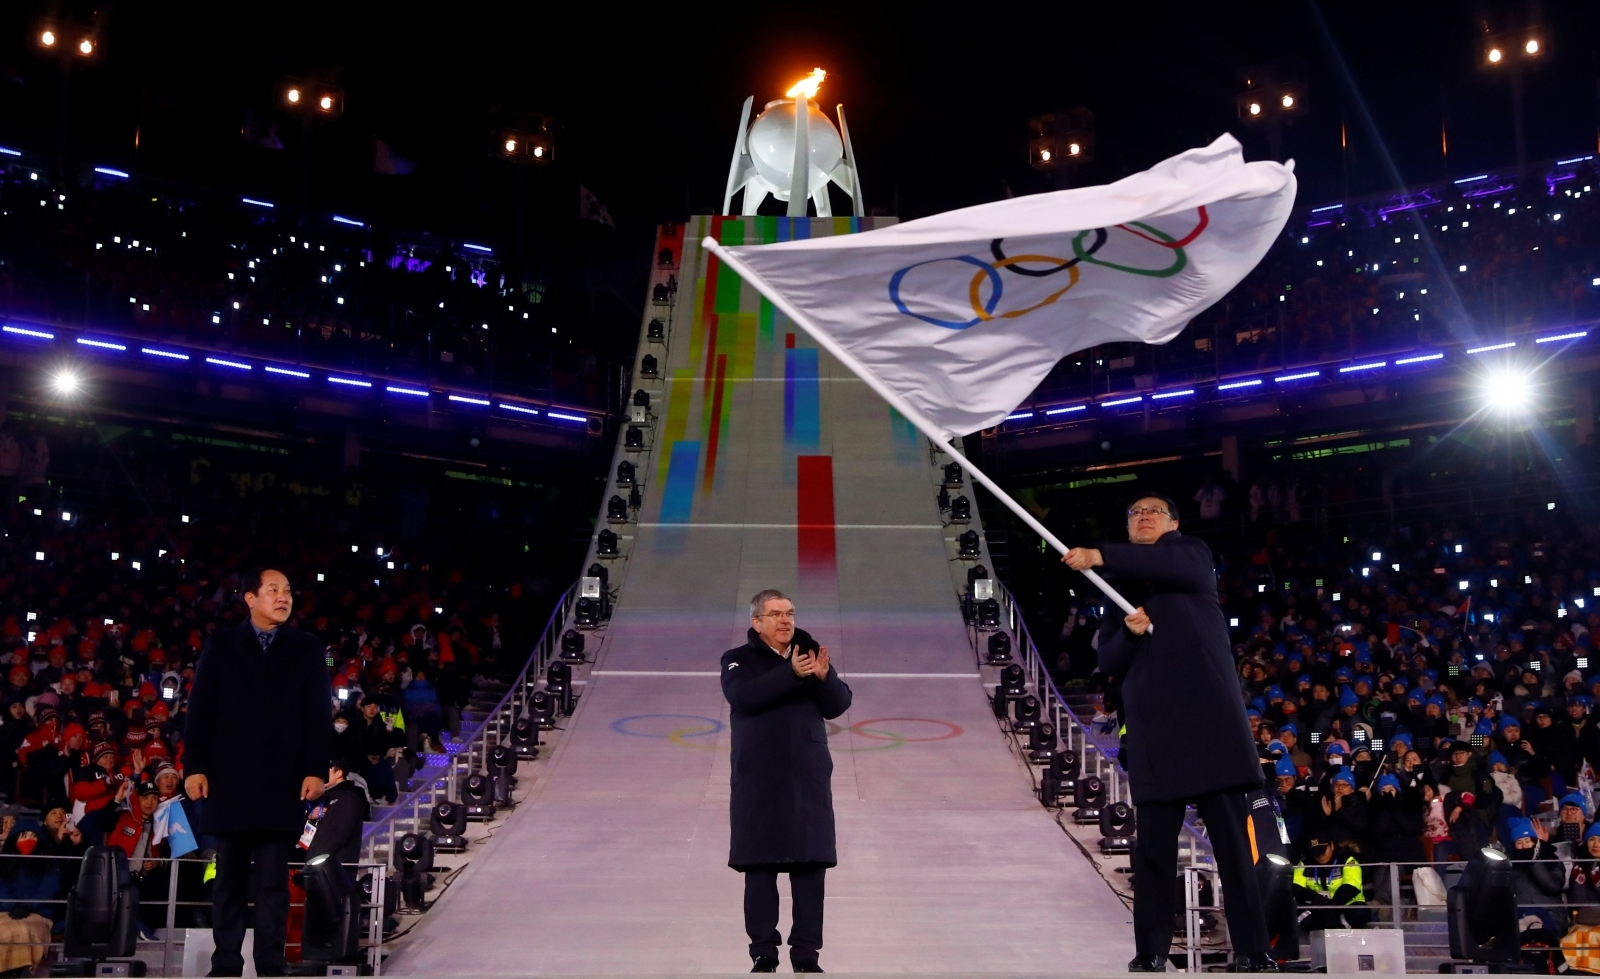 Russia's Olympic membership has been restored, according to the head of the country's Olympic Committee